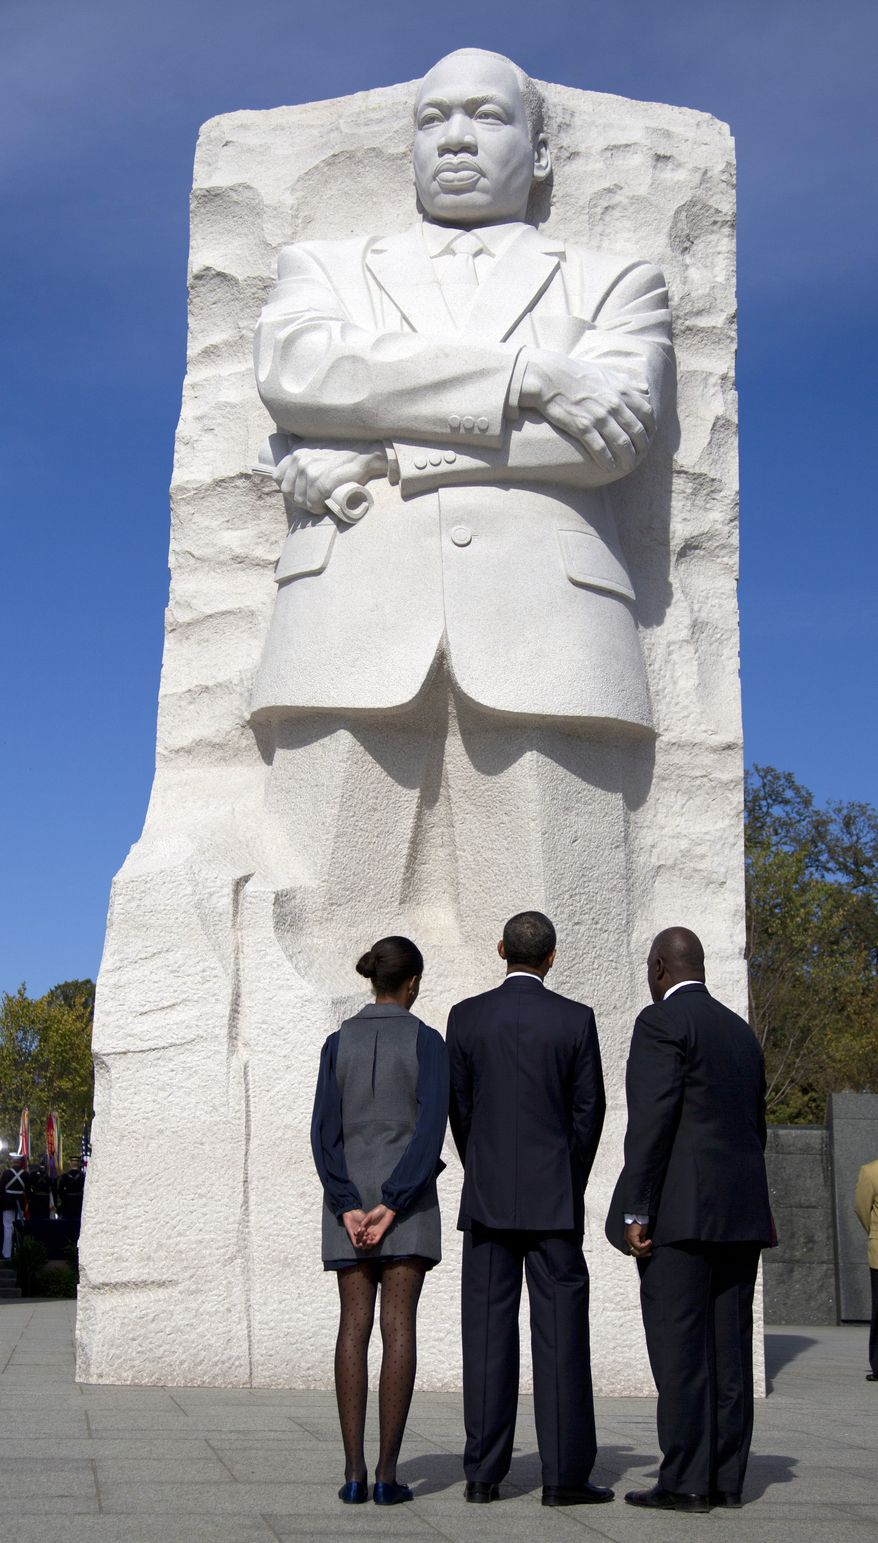 President Obama (center), his daughter Malia (left) and Harry Johnson, president and CEO of the Martin Luther King Jr. Memorial Foundation, look up at the Martin Luther King Jr. Memorial on Sunday, Oct. 16, 2011, on the National Mall in Washington. (AP Photo/Carolyn Kaster)